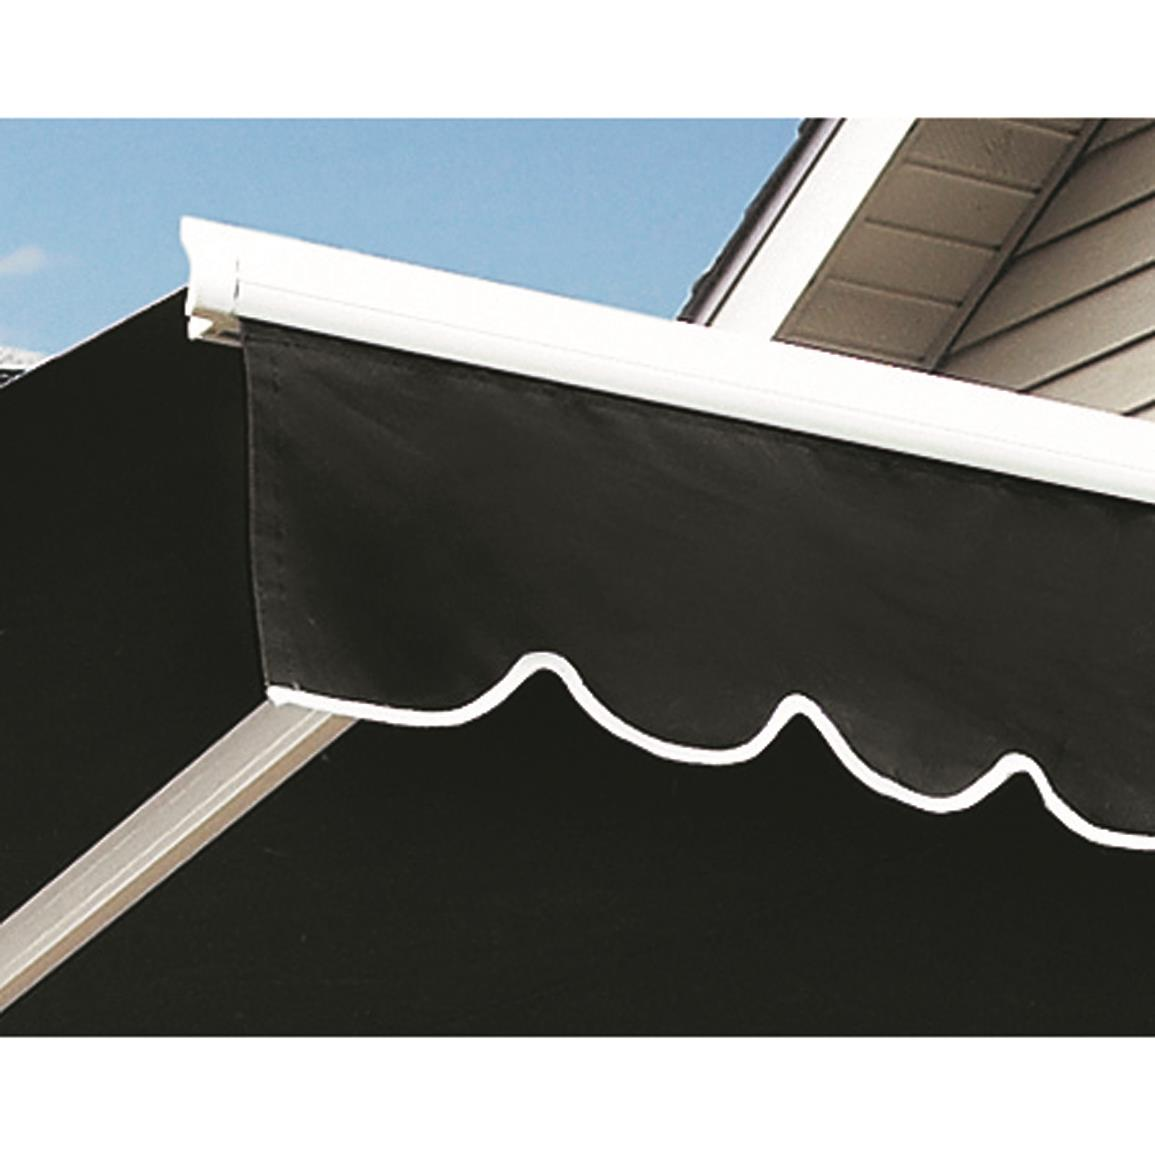 CASTLECREEK Retractable Awning - 234396, Gazebos, Awnings ...